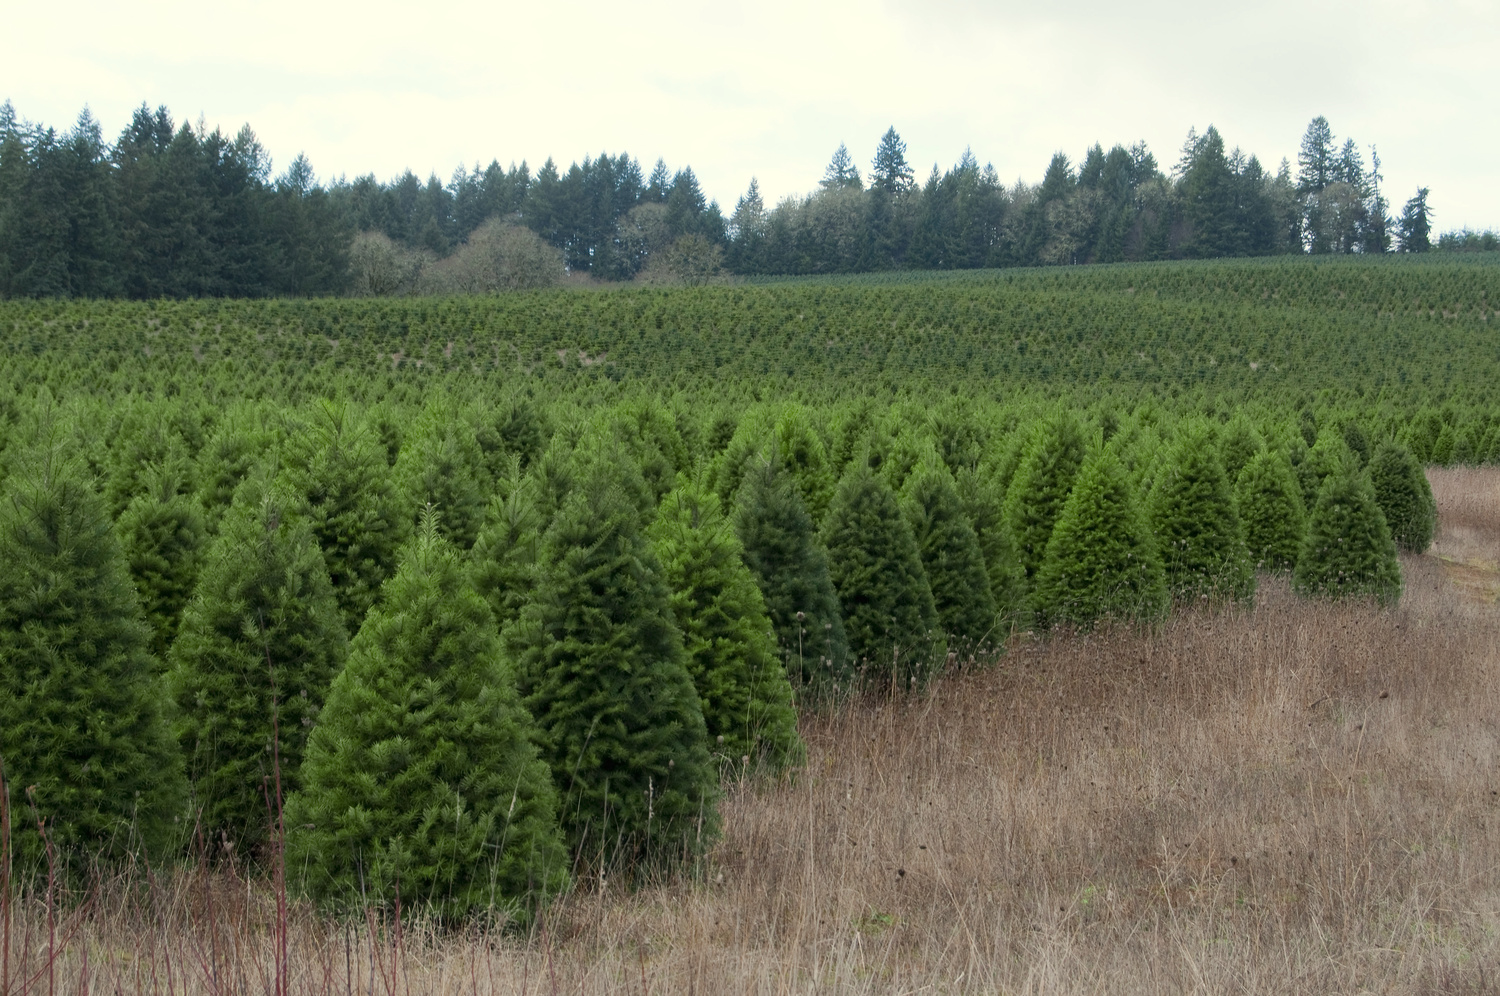 2017 wholesale prices - Wholesale Christmas Trees